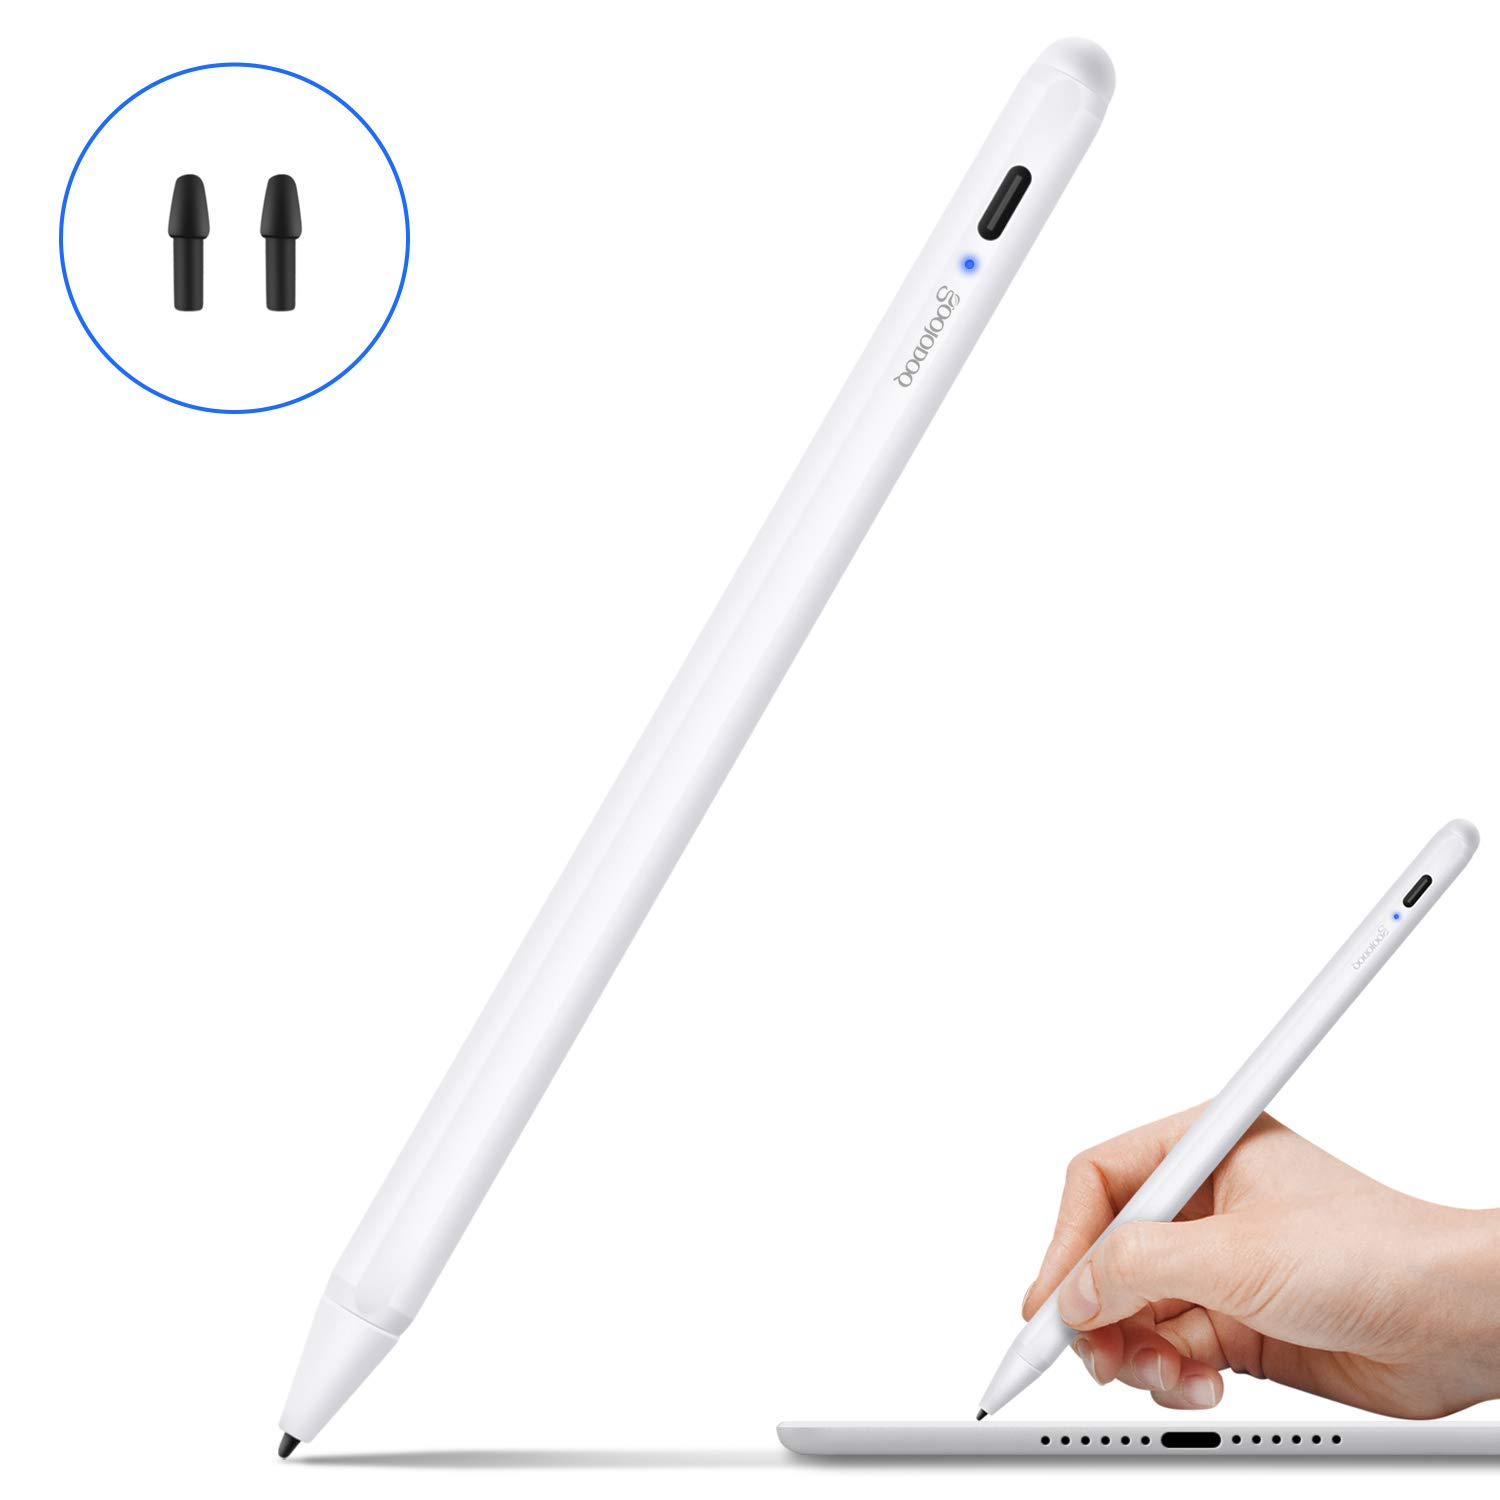 Goojodoq Stylus Pen for iPad 2018(6th Gen), Active Stylus Digital Pen 2nd Gen with Palm Rejection for iPad Air (3rd Gen), iPad Mini (5th Gen),iPad Pro (11 inch and 12.9 inch) by GOOJODOQ